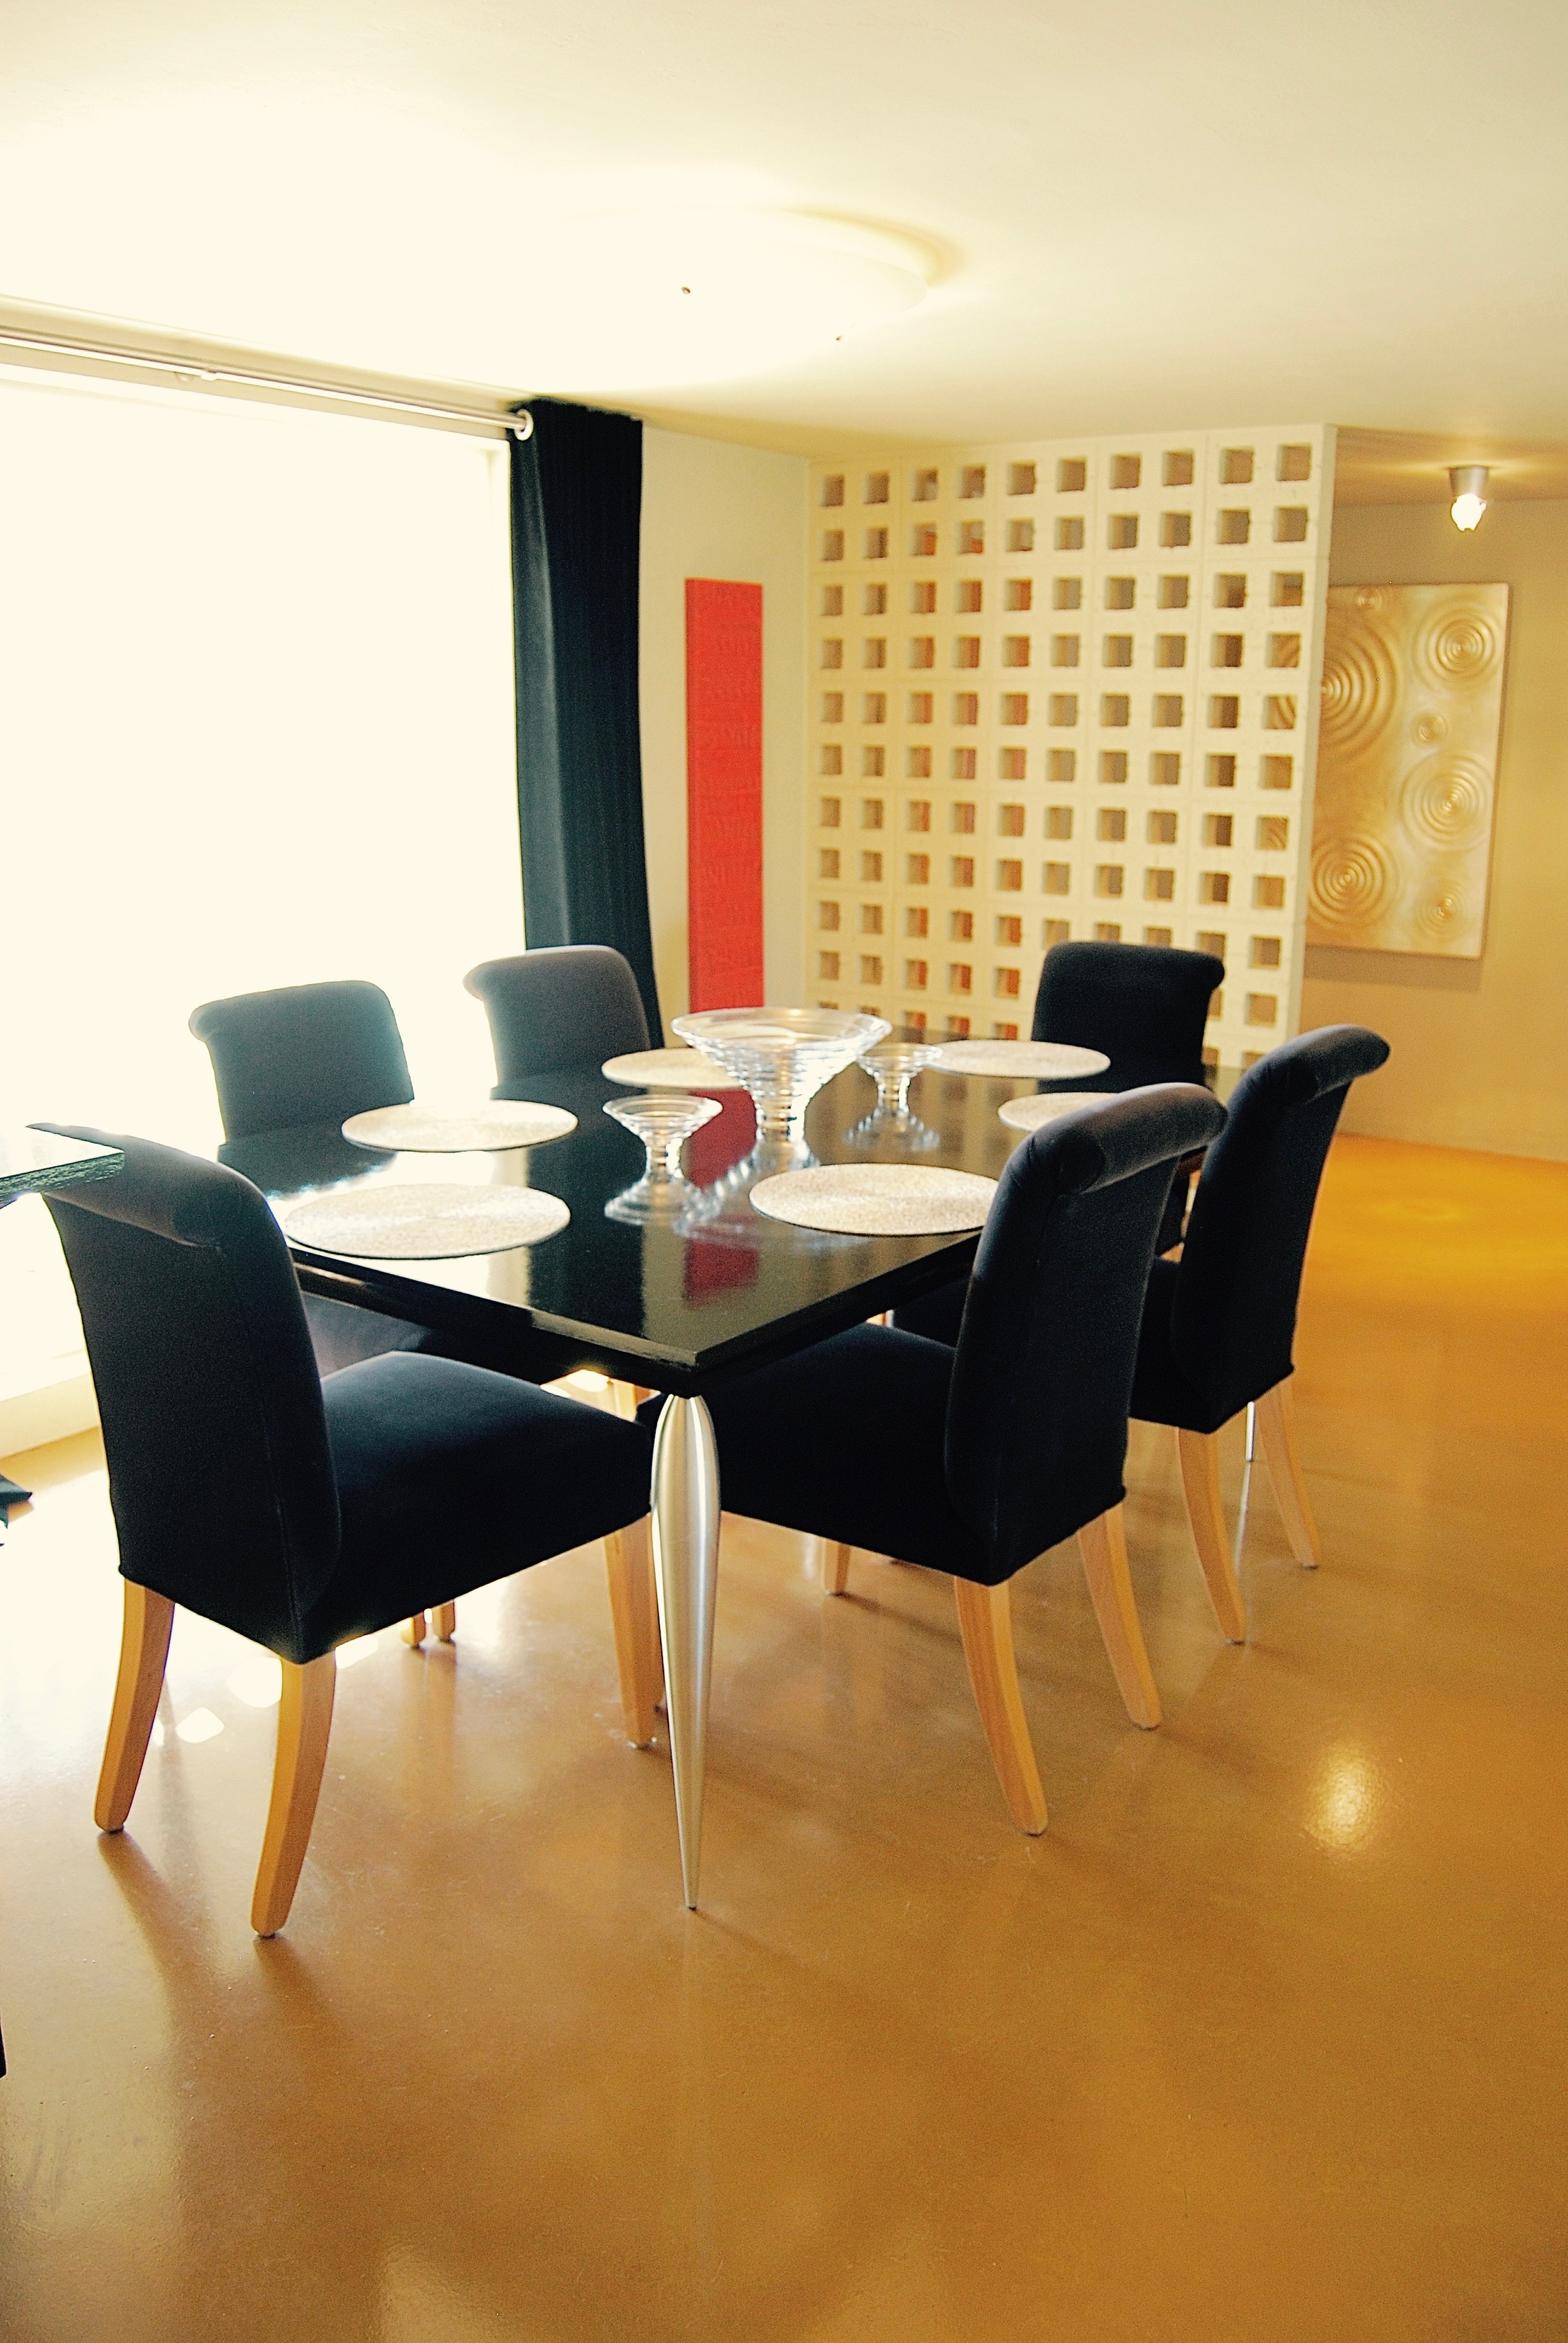 Coffin & King Custom Furniture/ Interiors - Dining Table with Milled Aluminum Legs, Hand Rubbed Oil Paint